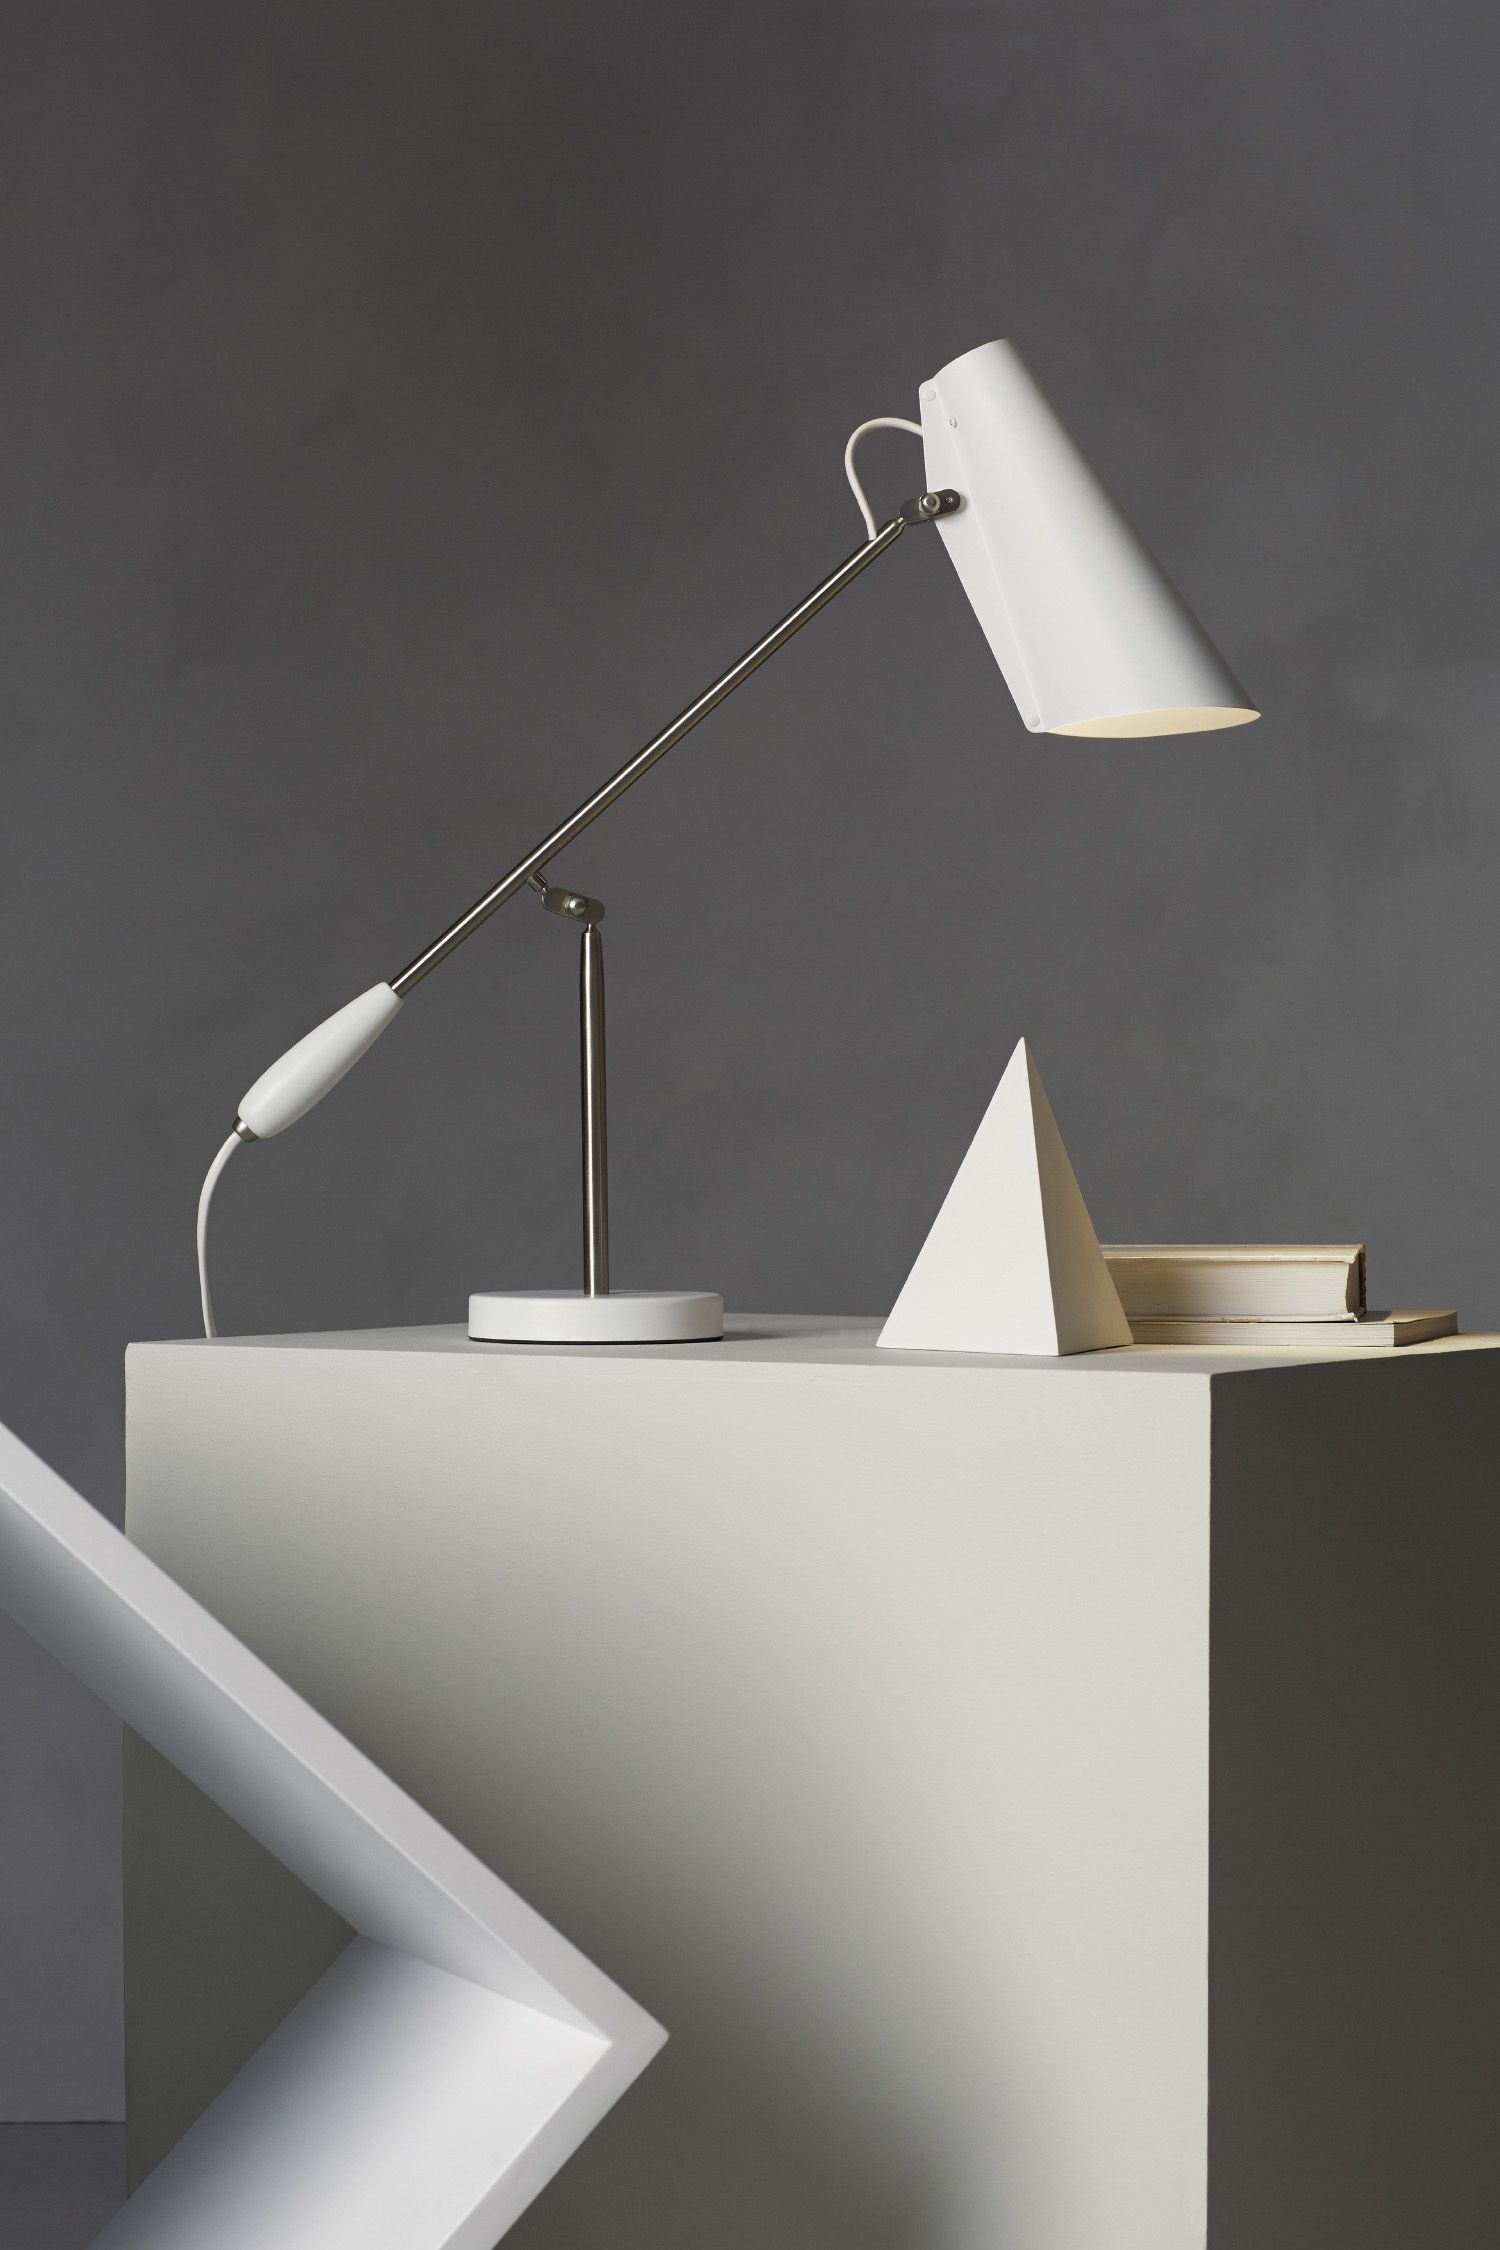 Lampe De Salon A Poser Superbes Lampe De Table Birdy De northern Lighting 4 Coloris